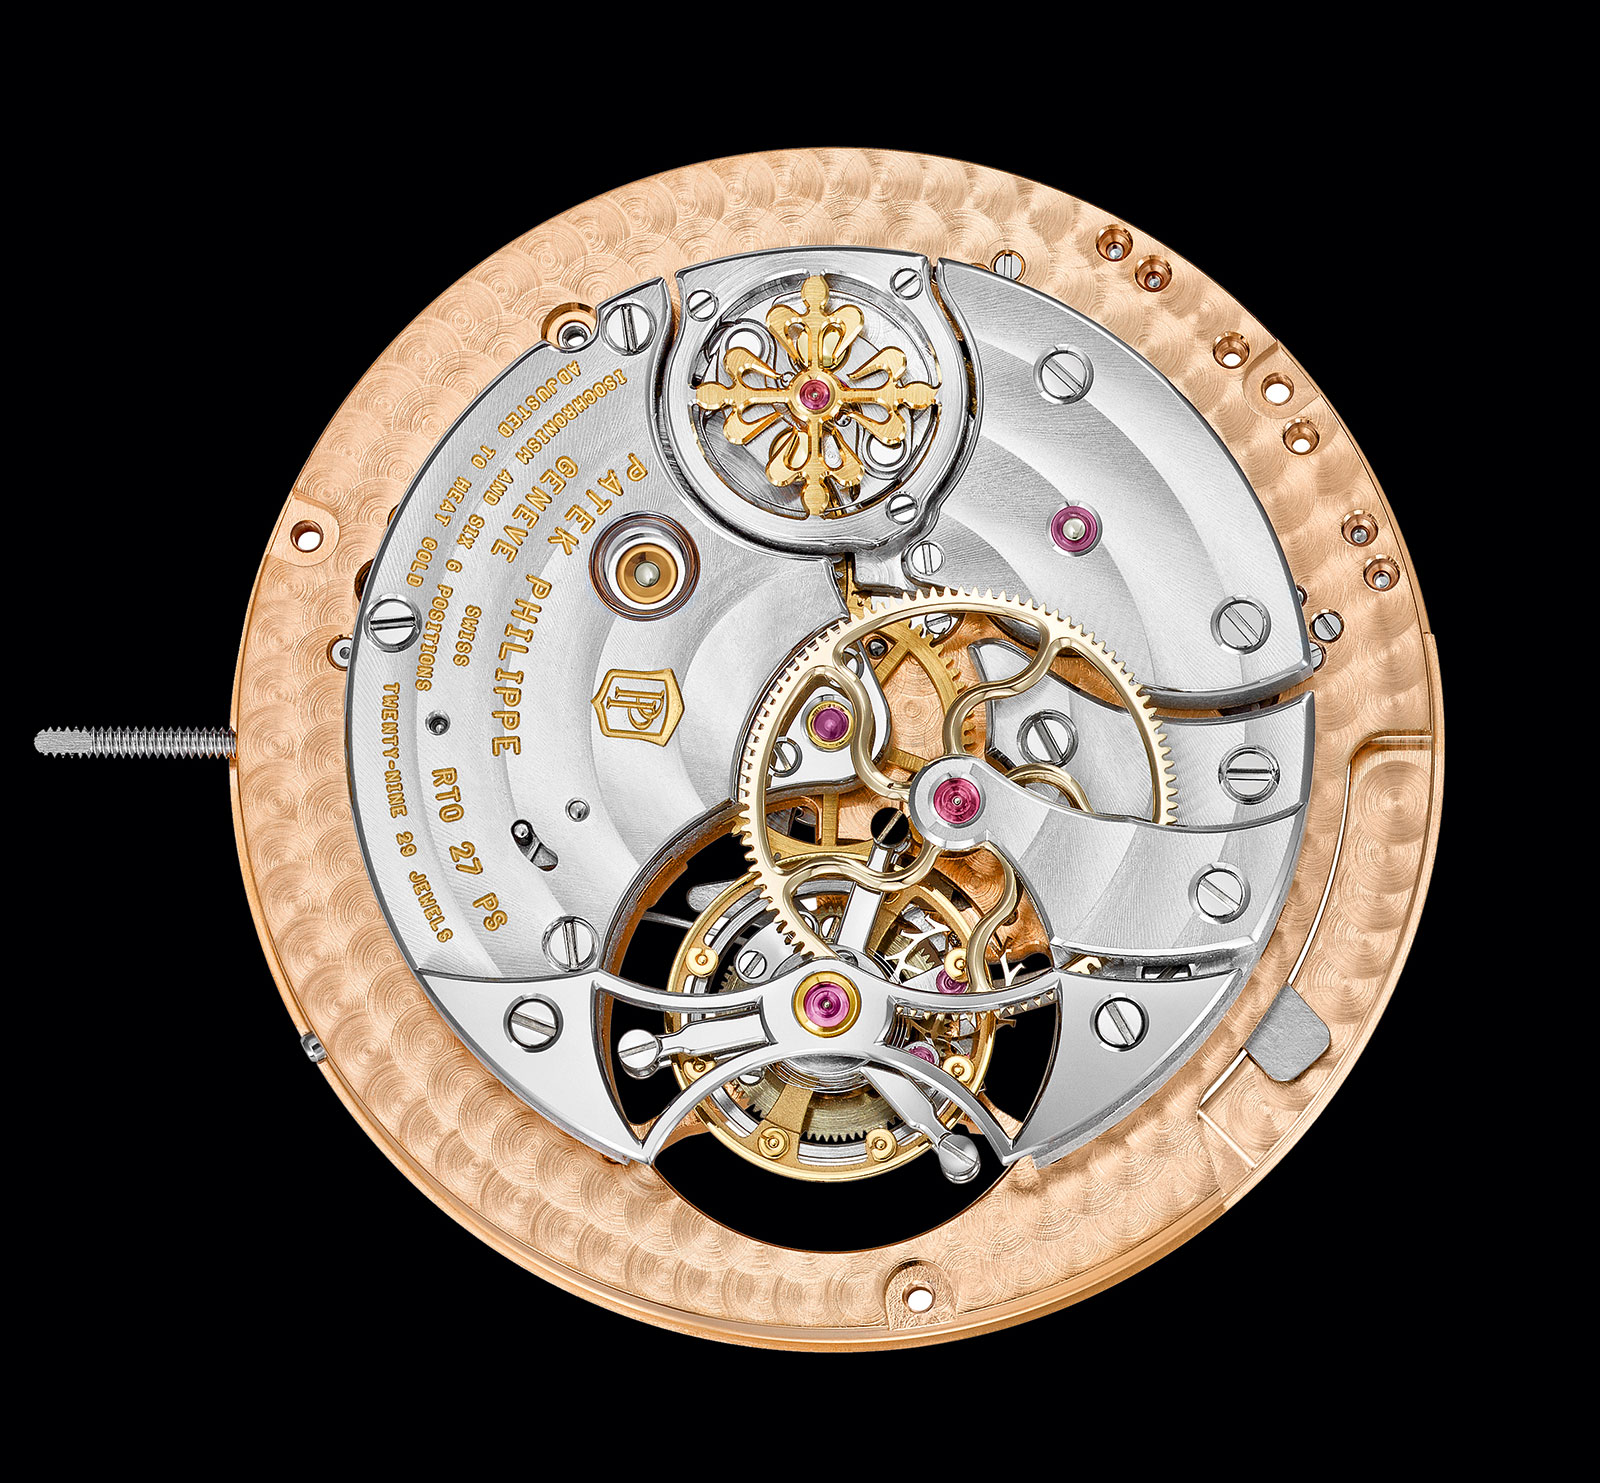 patek philippe 5303R Minute Repeater Tourbillon Singapore 2019 7